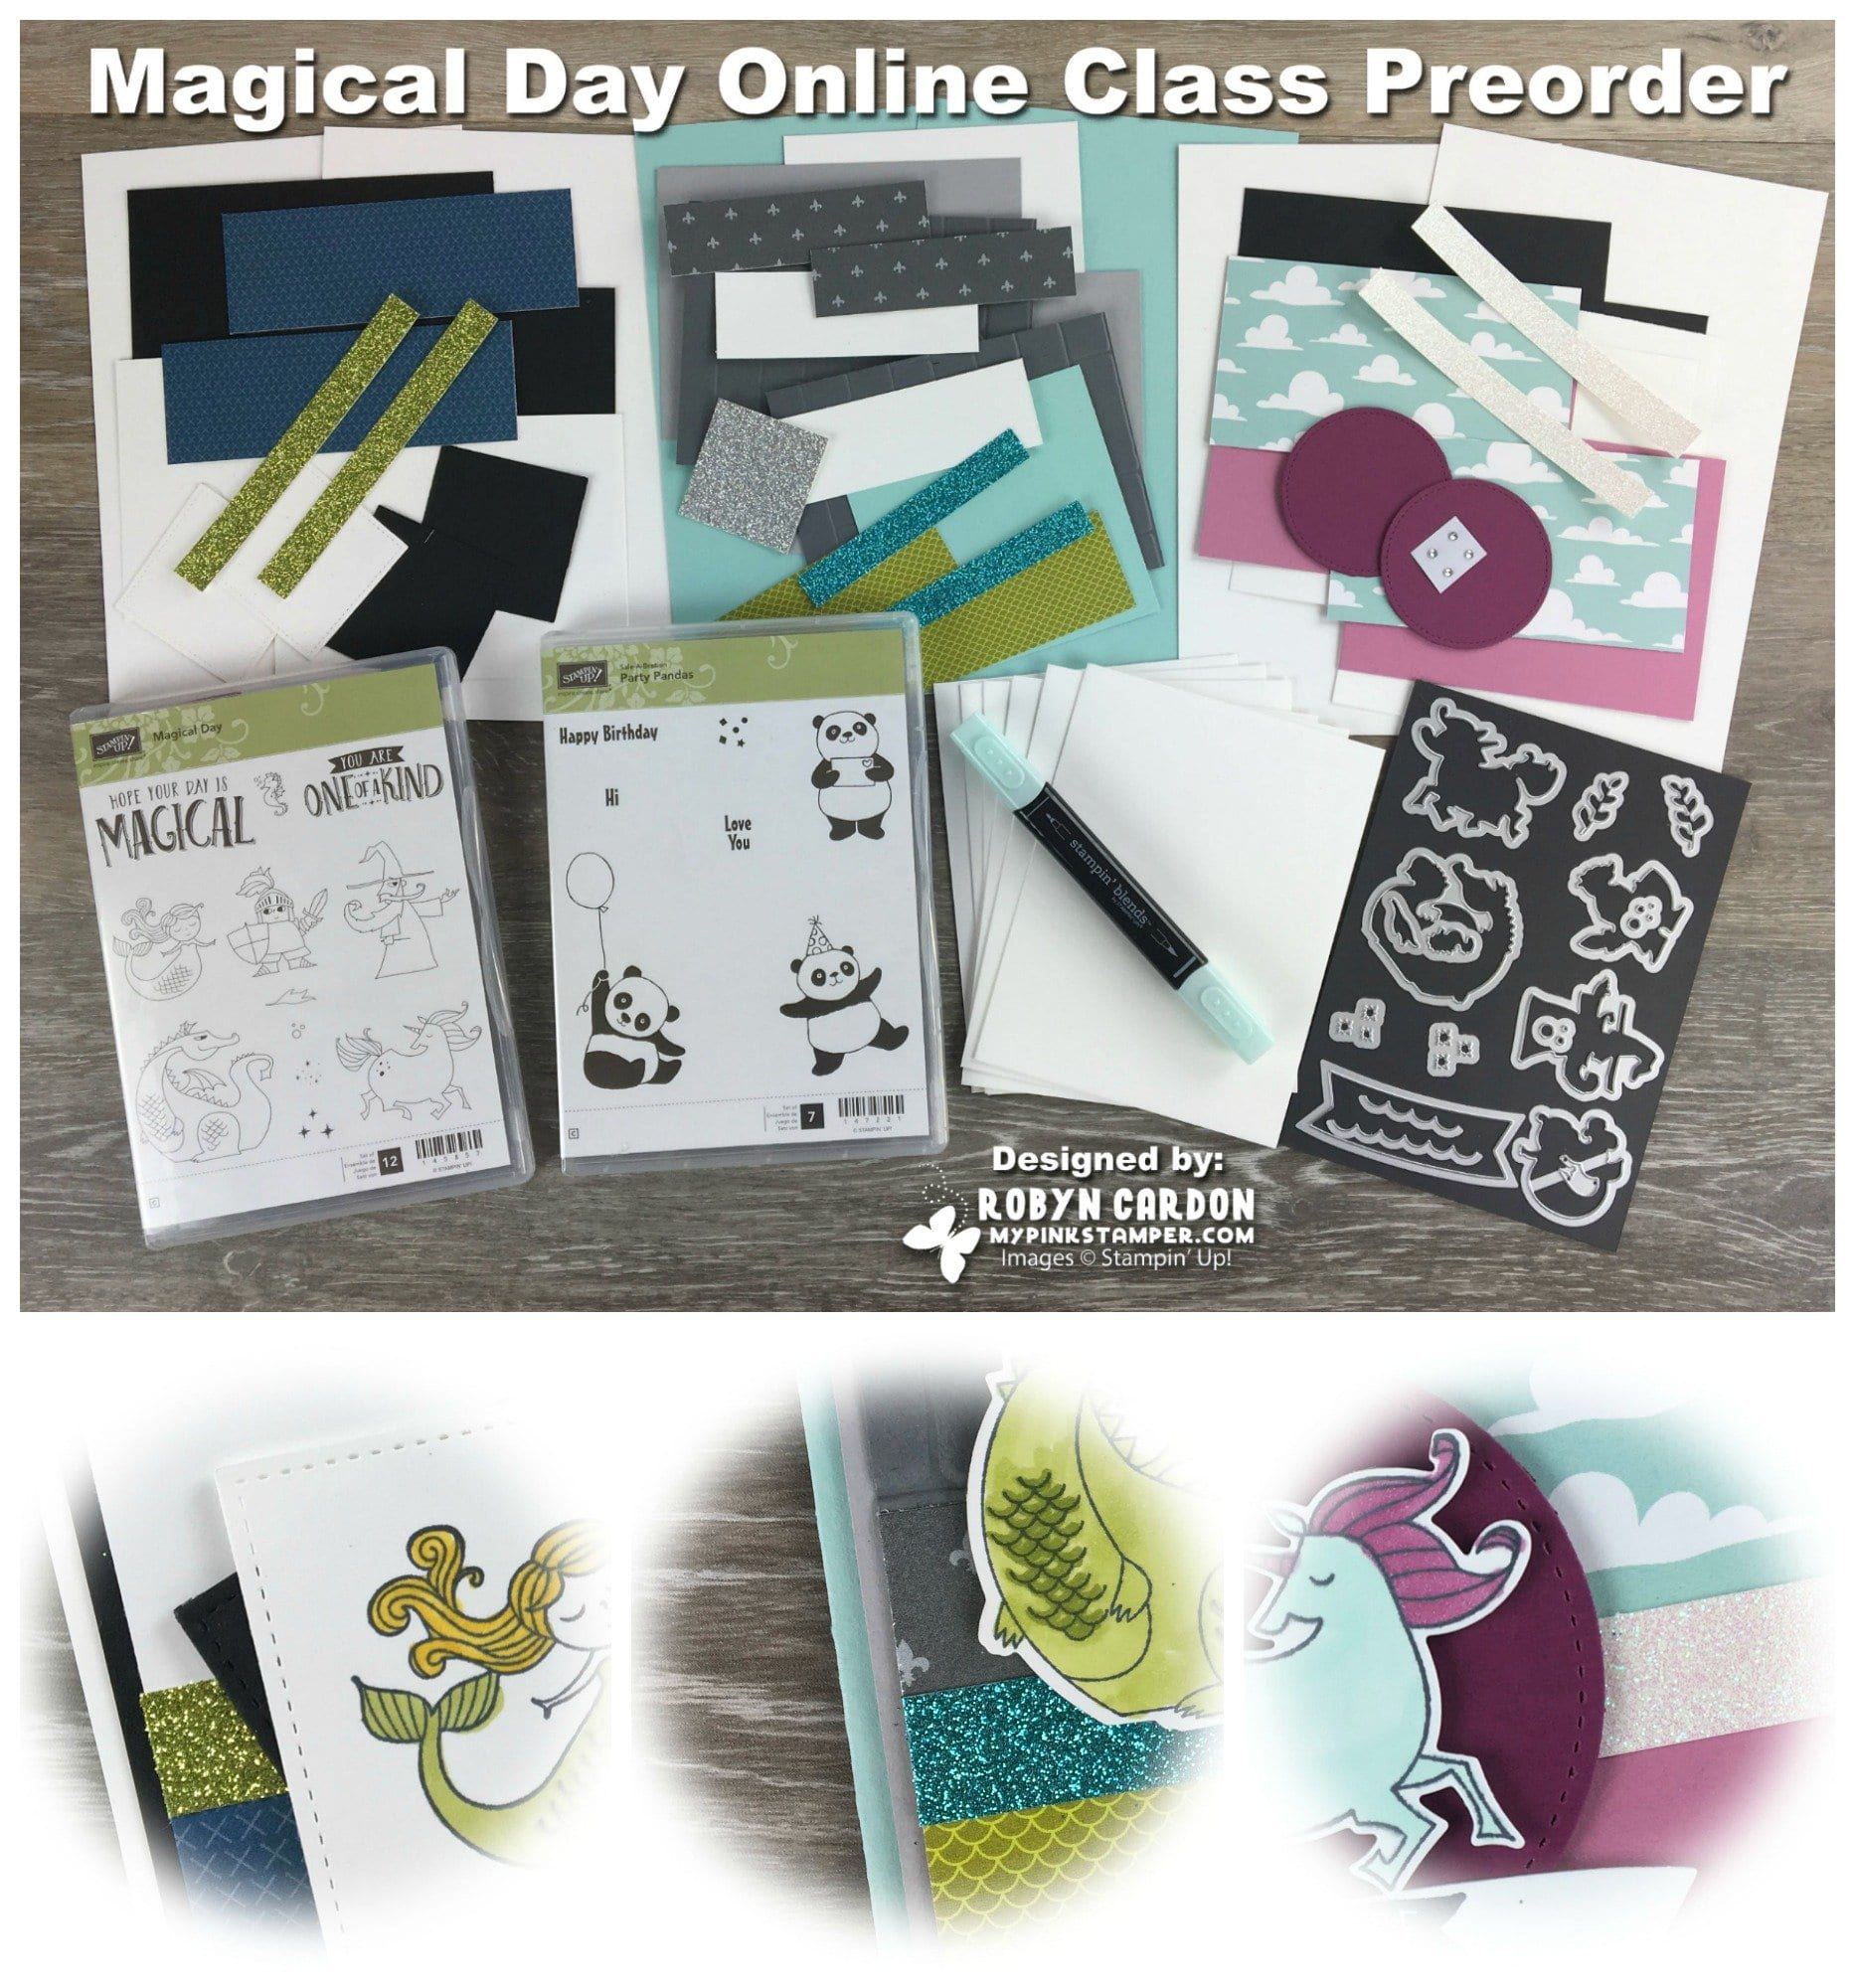 Magical Day Online Class Preorder